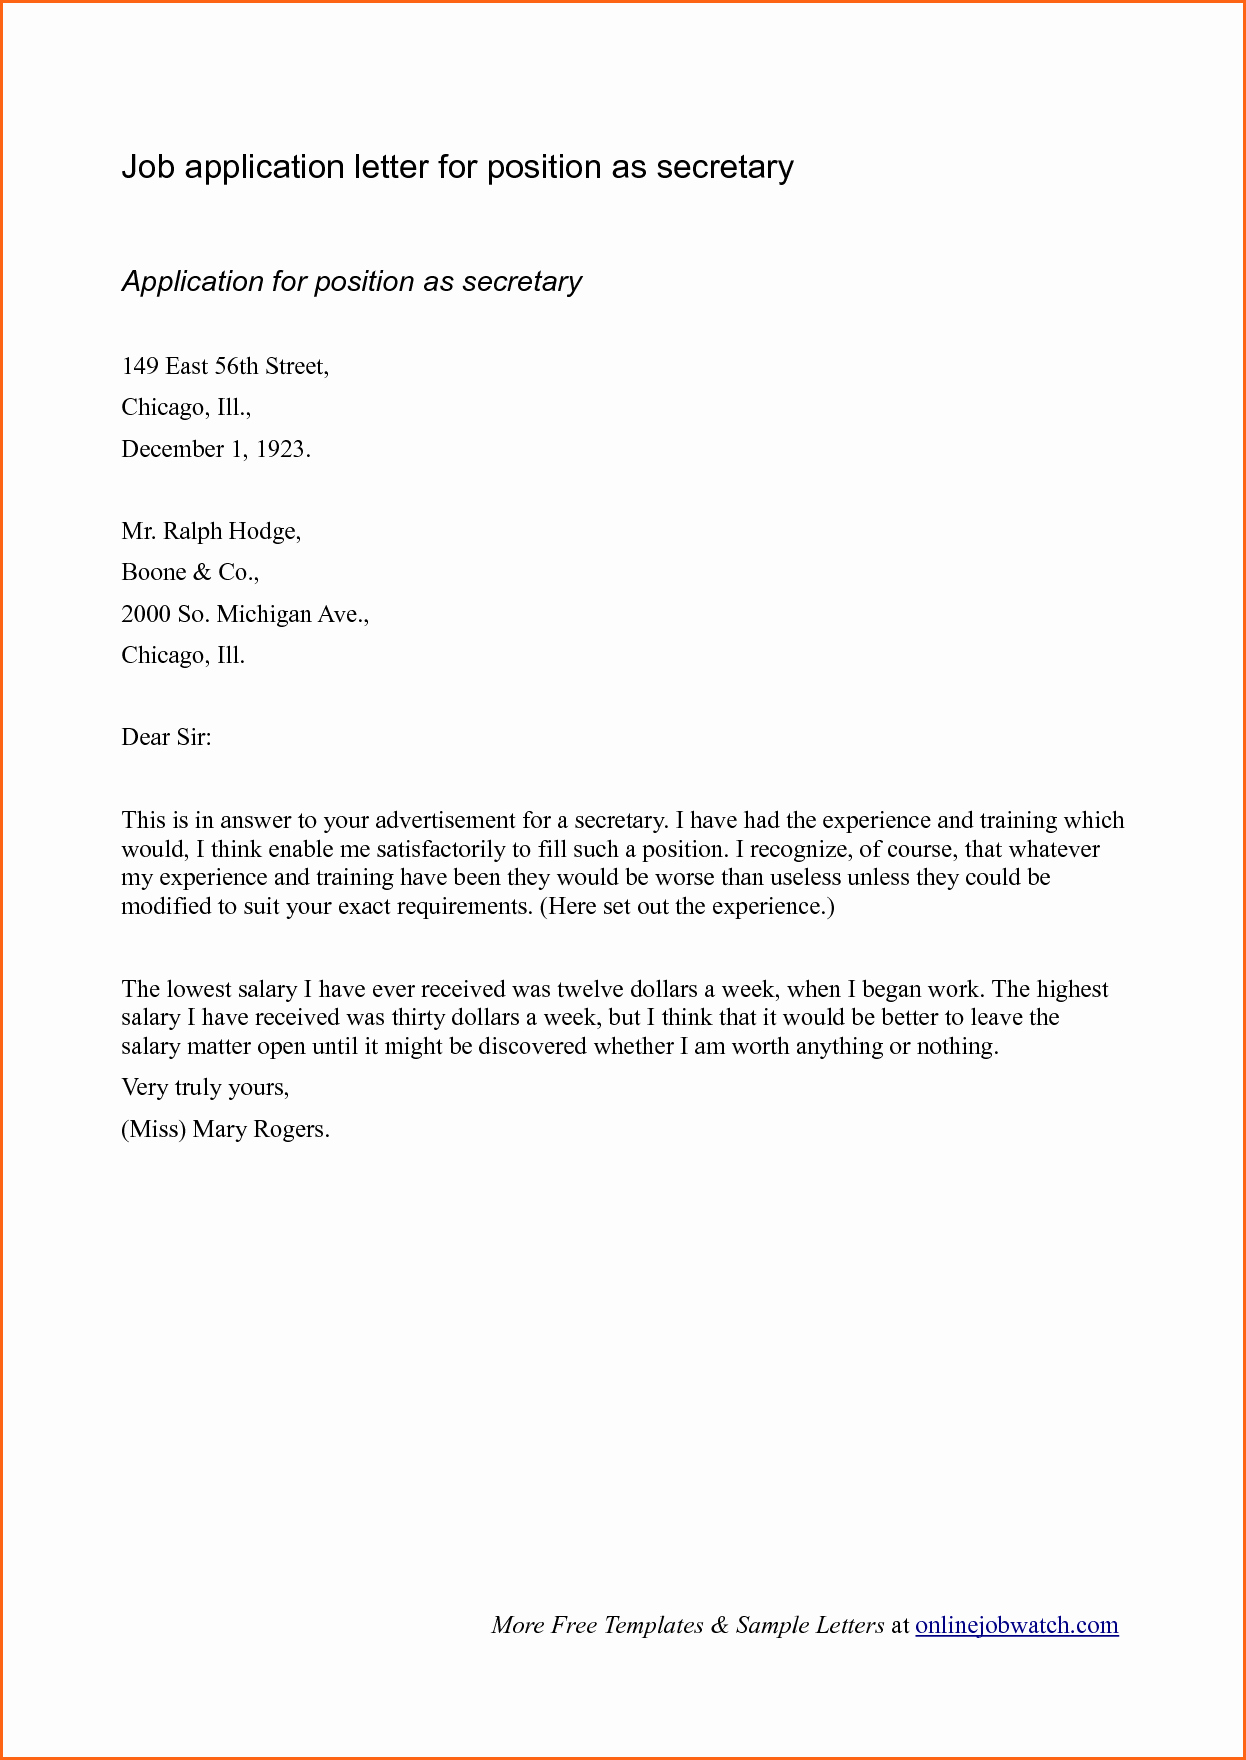 7 How to Write Application Letter for Teaching Job